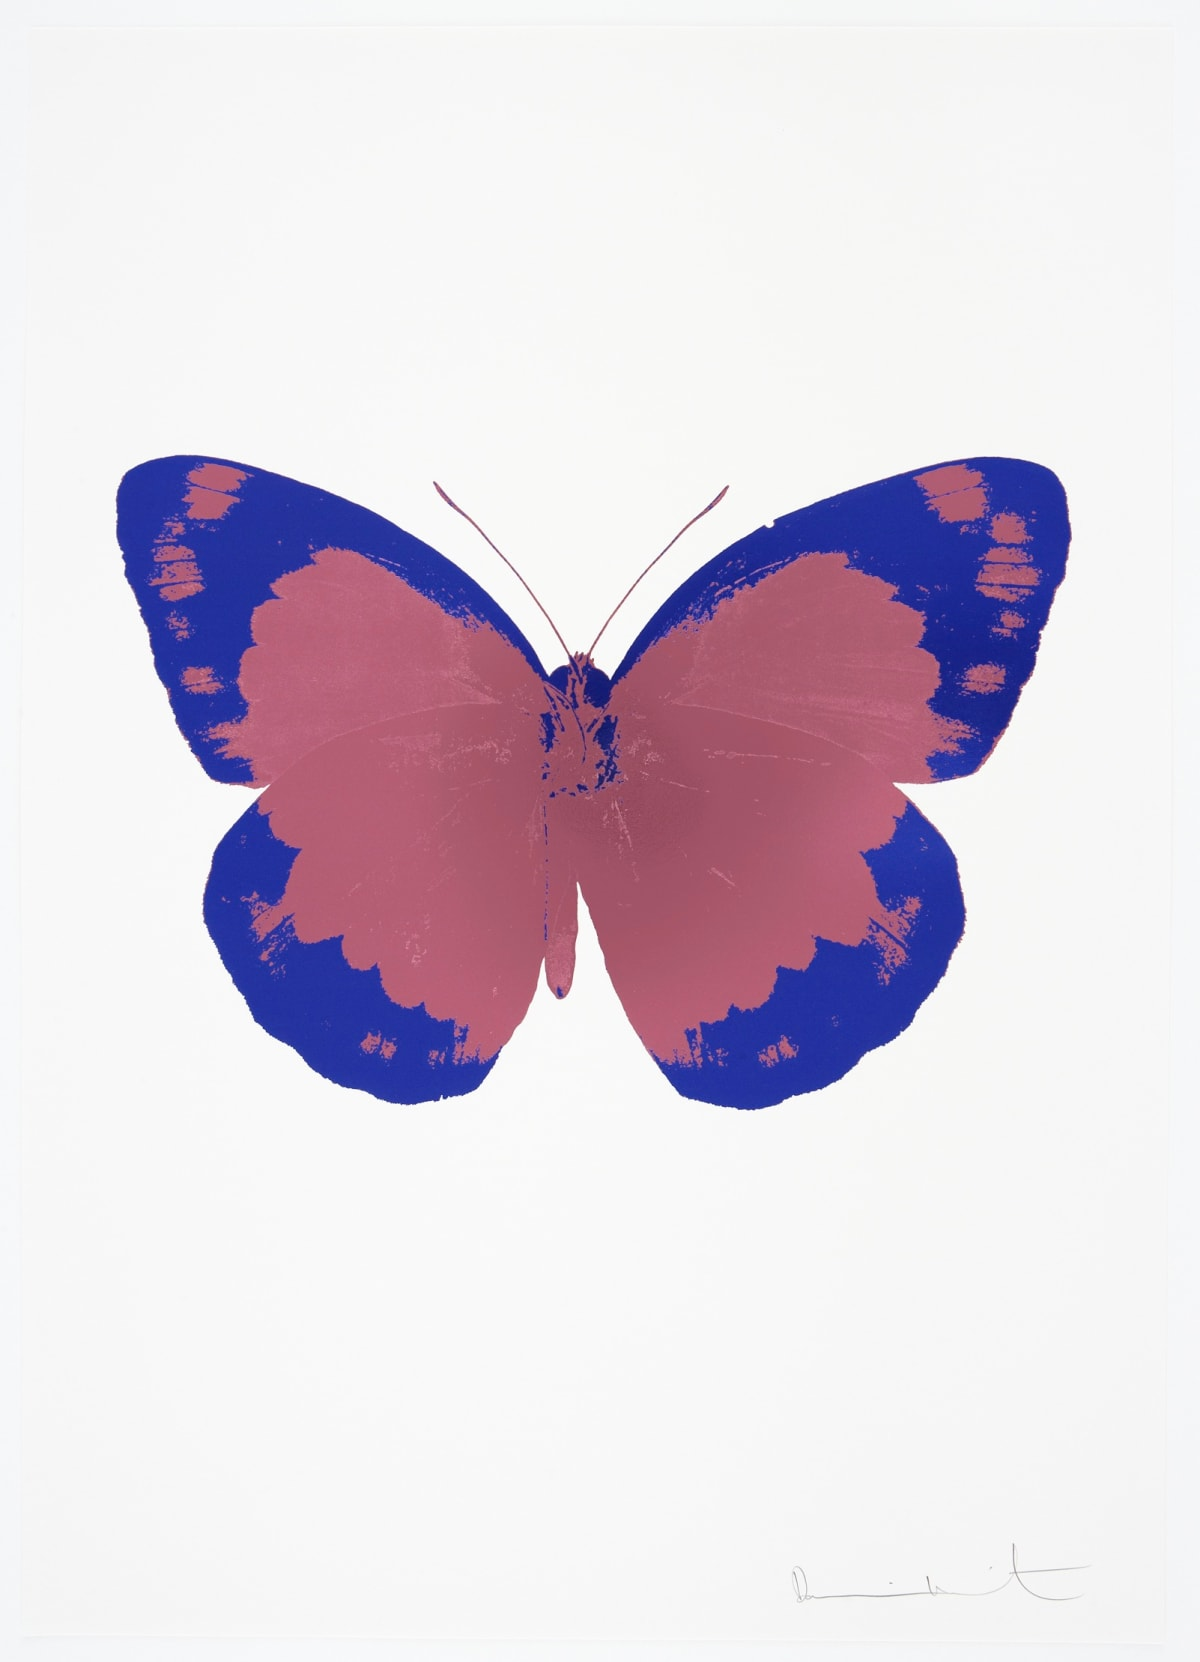 Damien Hirst The Souls II - Loganberry Pink/Westminster Blue/Blind Impression, 2010 2 colour foil block on 300gsm Arches 88 archival paper. Signed and numbered. Published by Paul Stolper and Other Criteria 72 x 51cm OC7826 / 658-9 Edition of 15